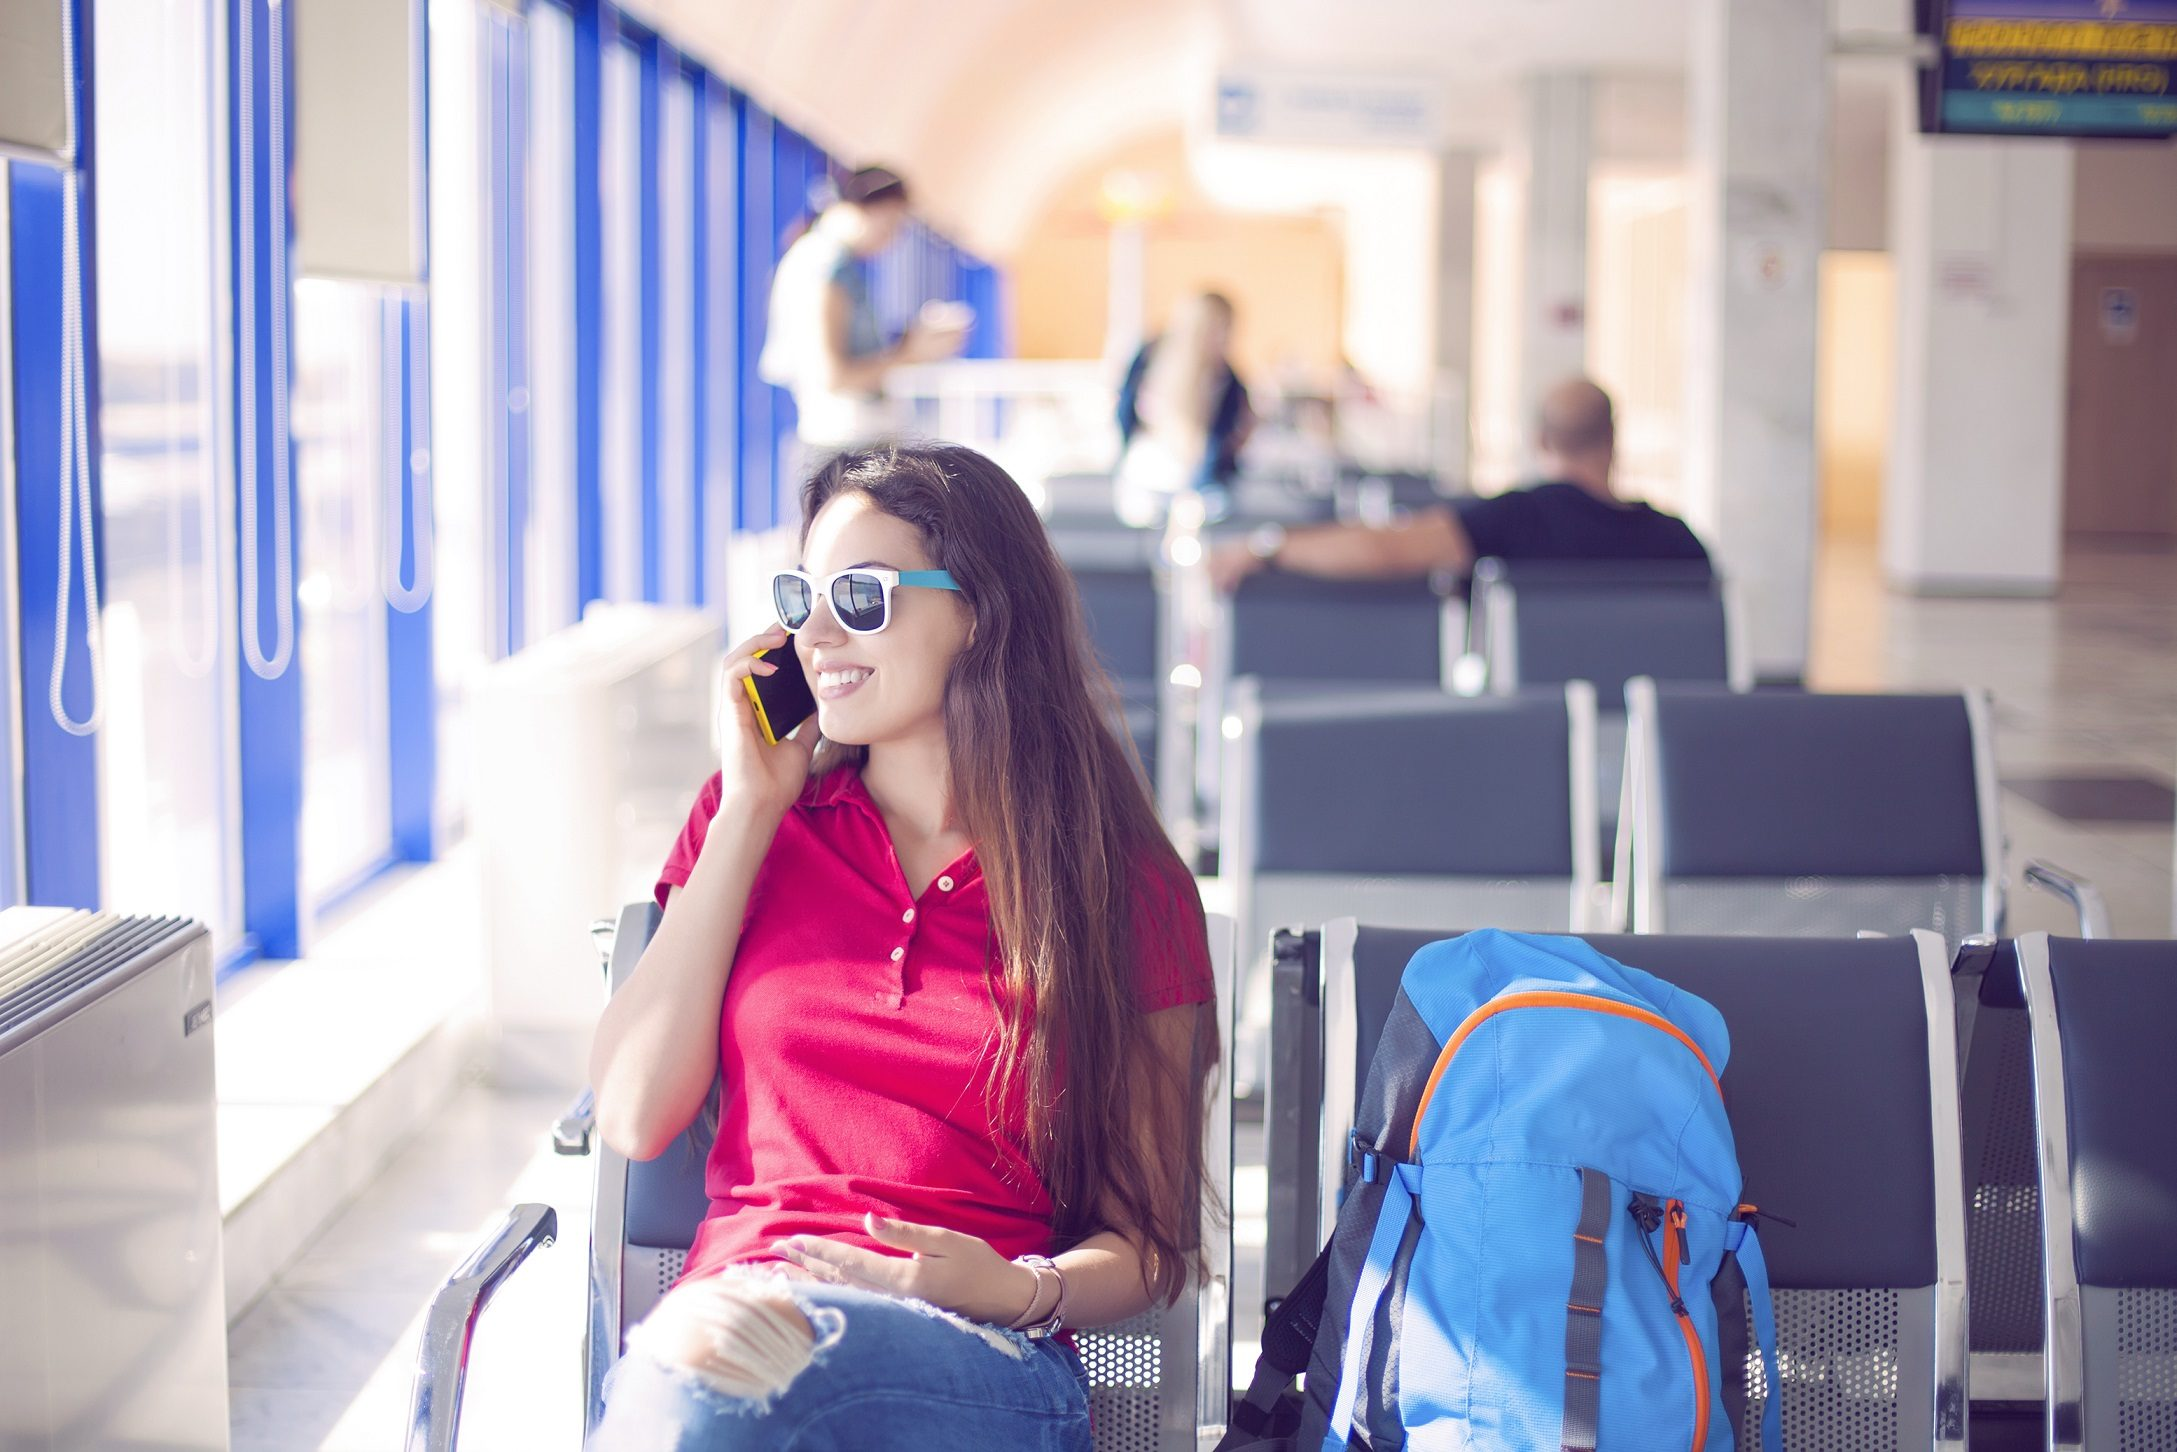 Young female passenger on smart phone at airport